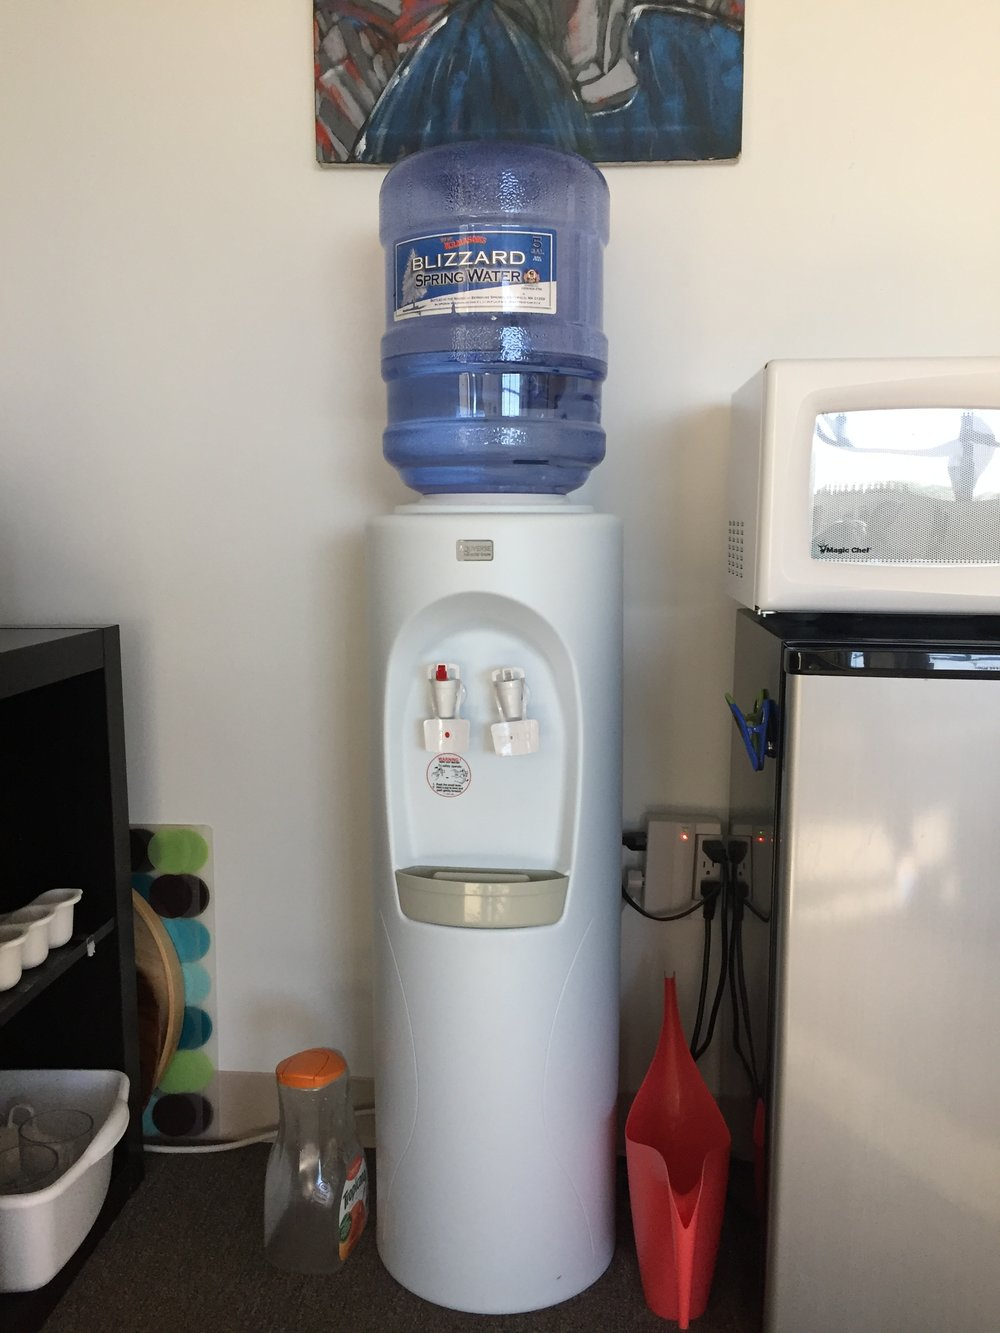 Water Dispenser Hot/Cold - $50